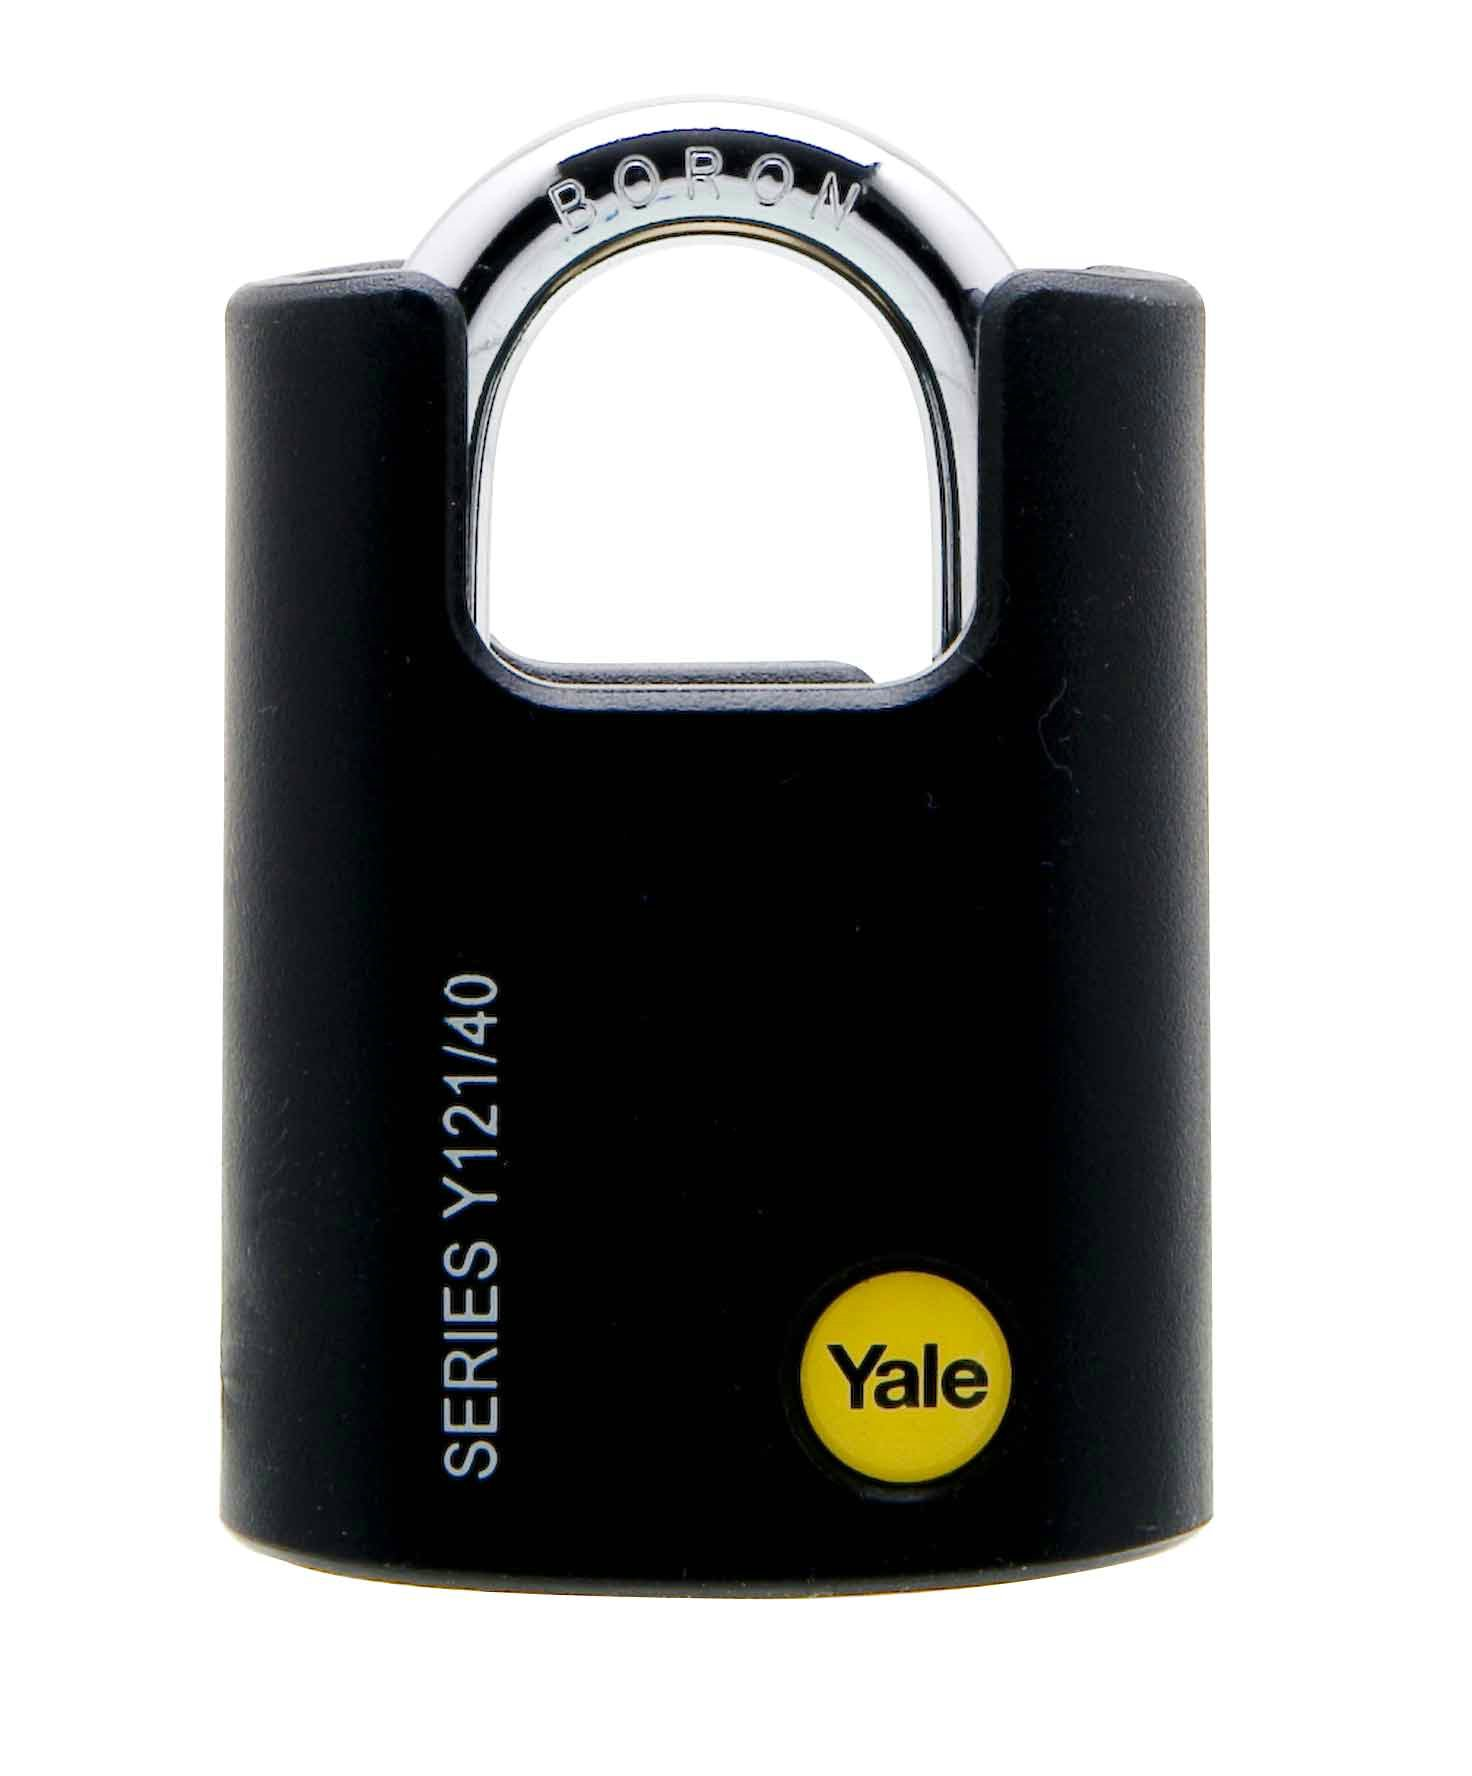 Y121/40/125 - Yale Classic Series Outdoor Black Plastic Covered Brass Padlock (Boron Shackle) 40mm